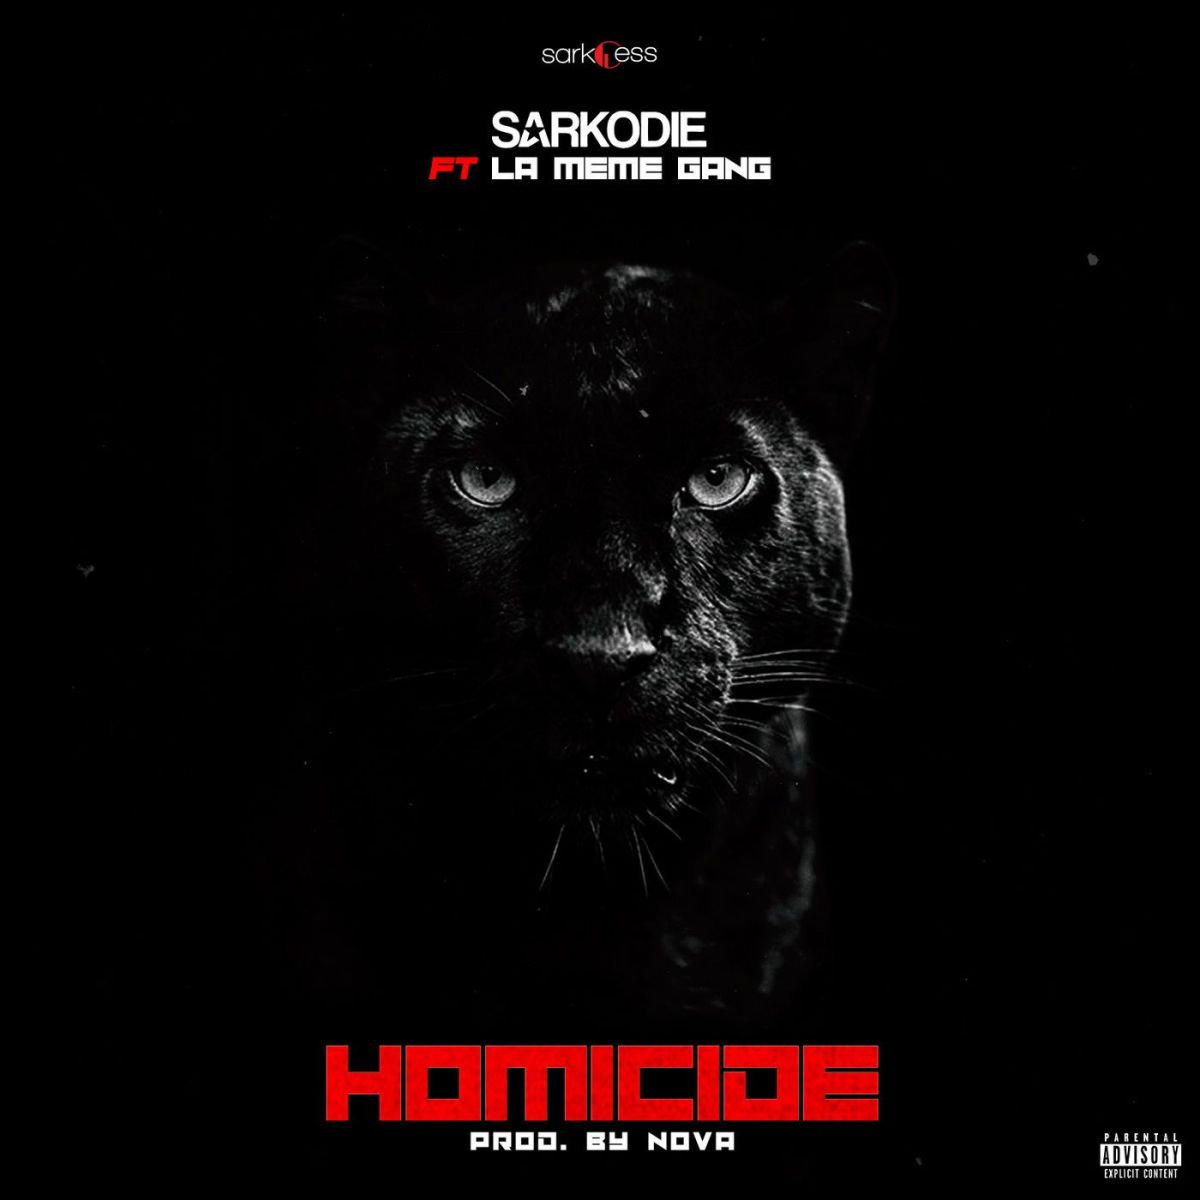 Download : Sarkodie Ft La Meme Gang - Homicide (Prod. by Nova)